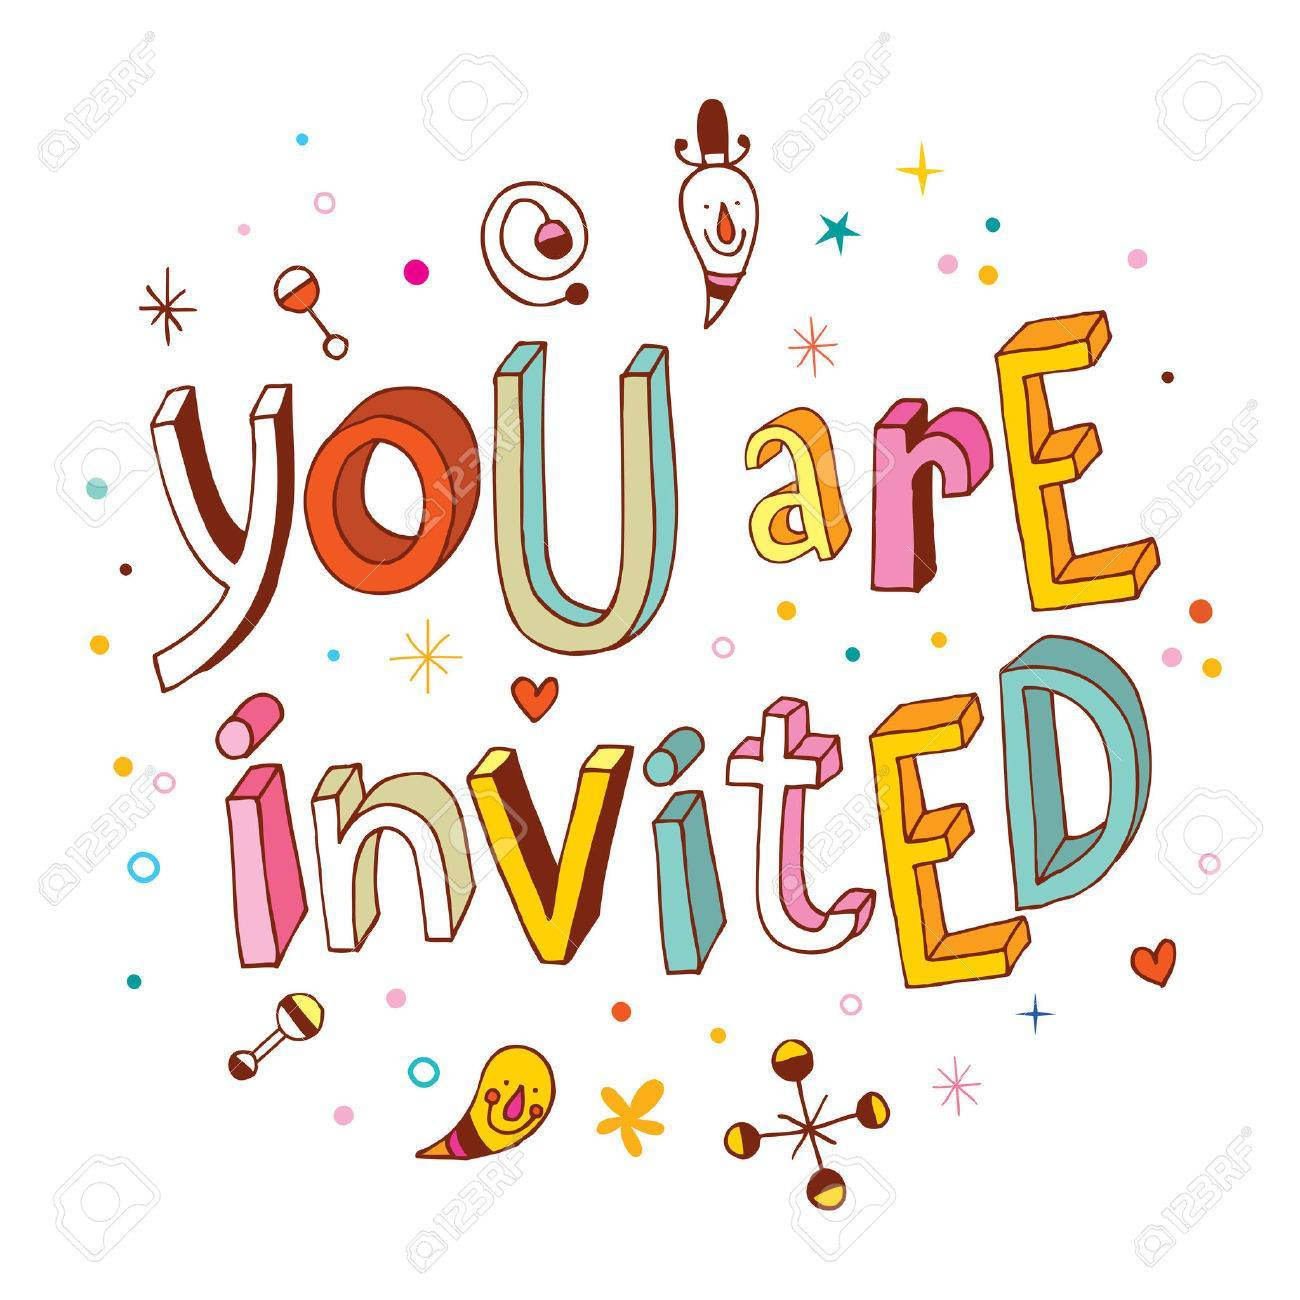 Youre invited clipart 6 » Clipart Portal.